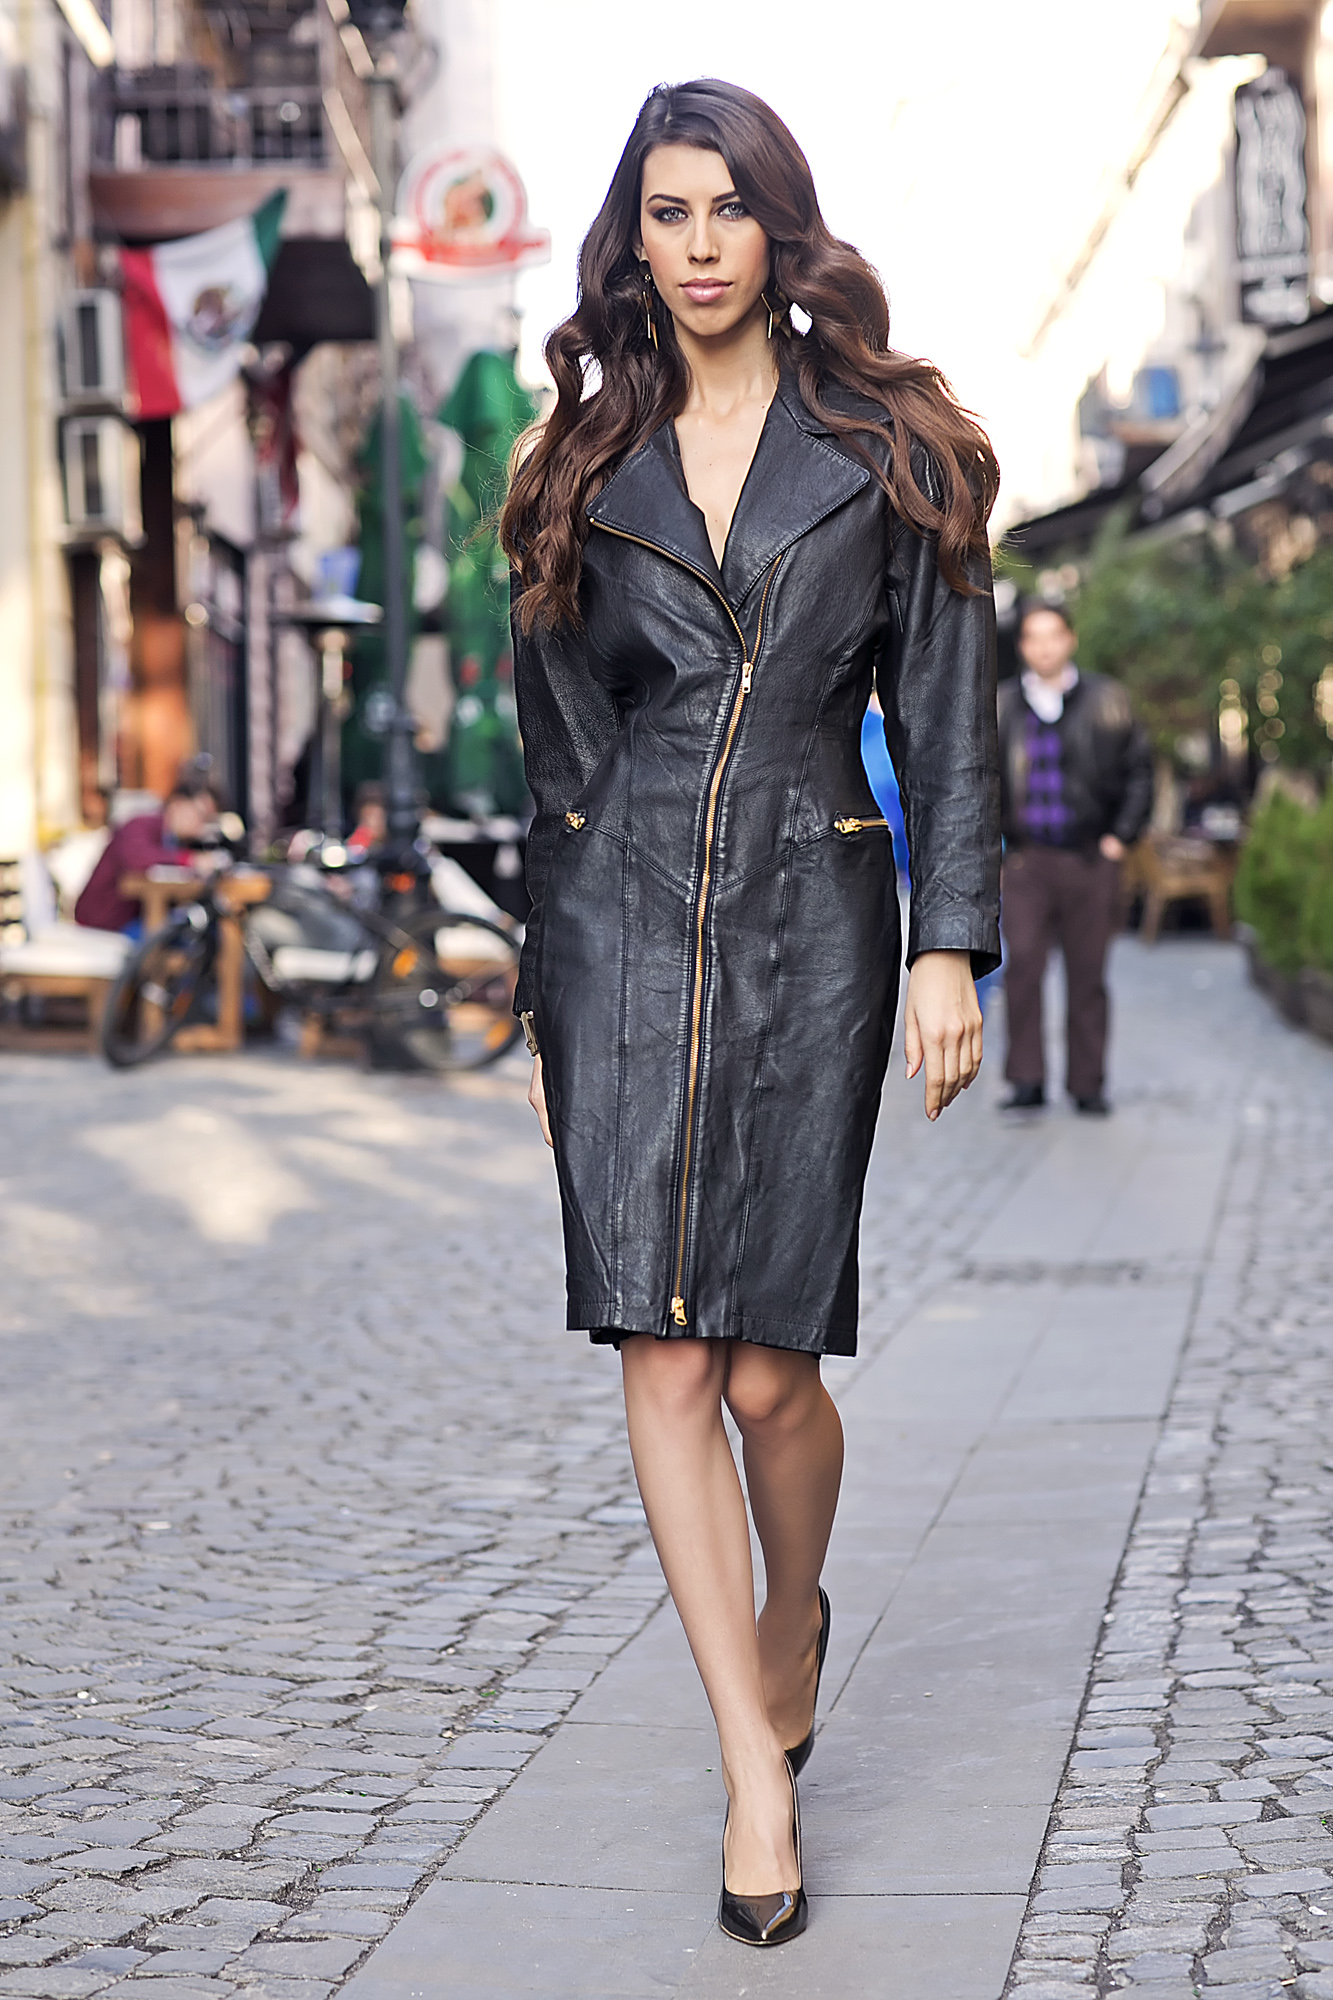 The Vintage Leather Dress